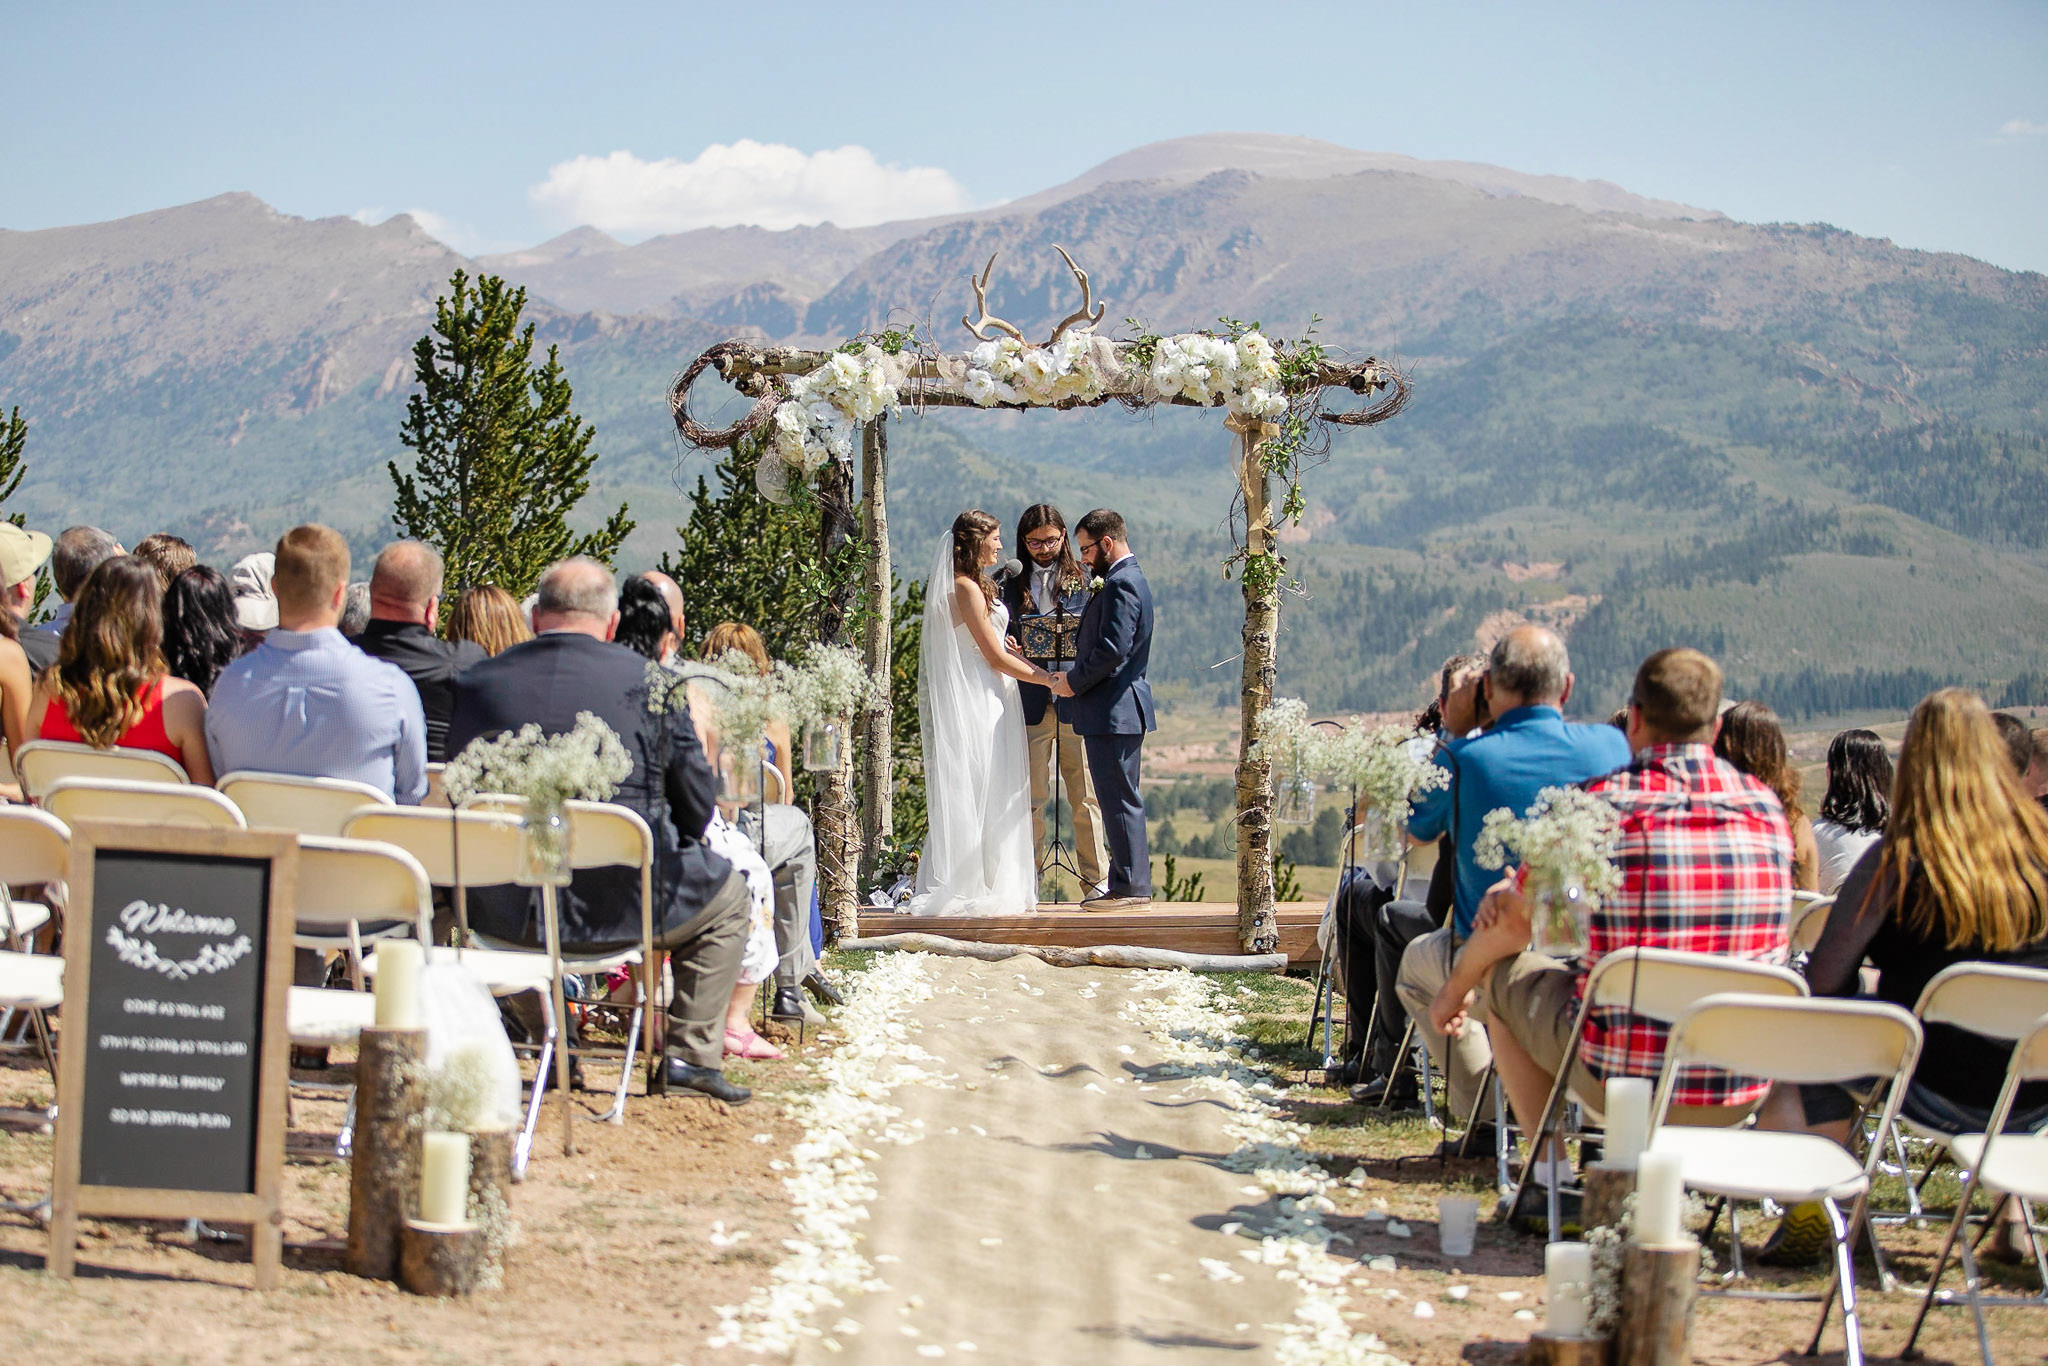 Colorado Mountain ceremony with views of Pikes Peak at the Really Blessed Cabin Wedding Venue